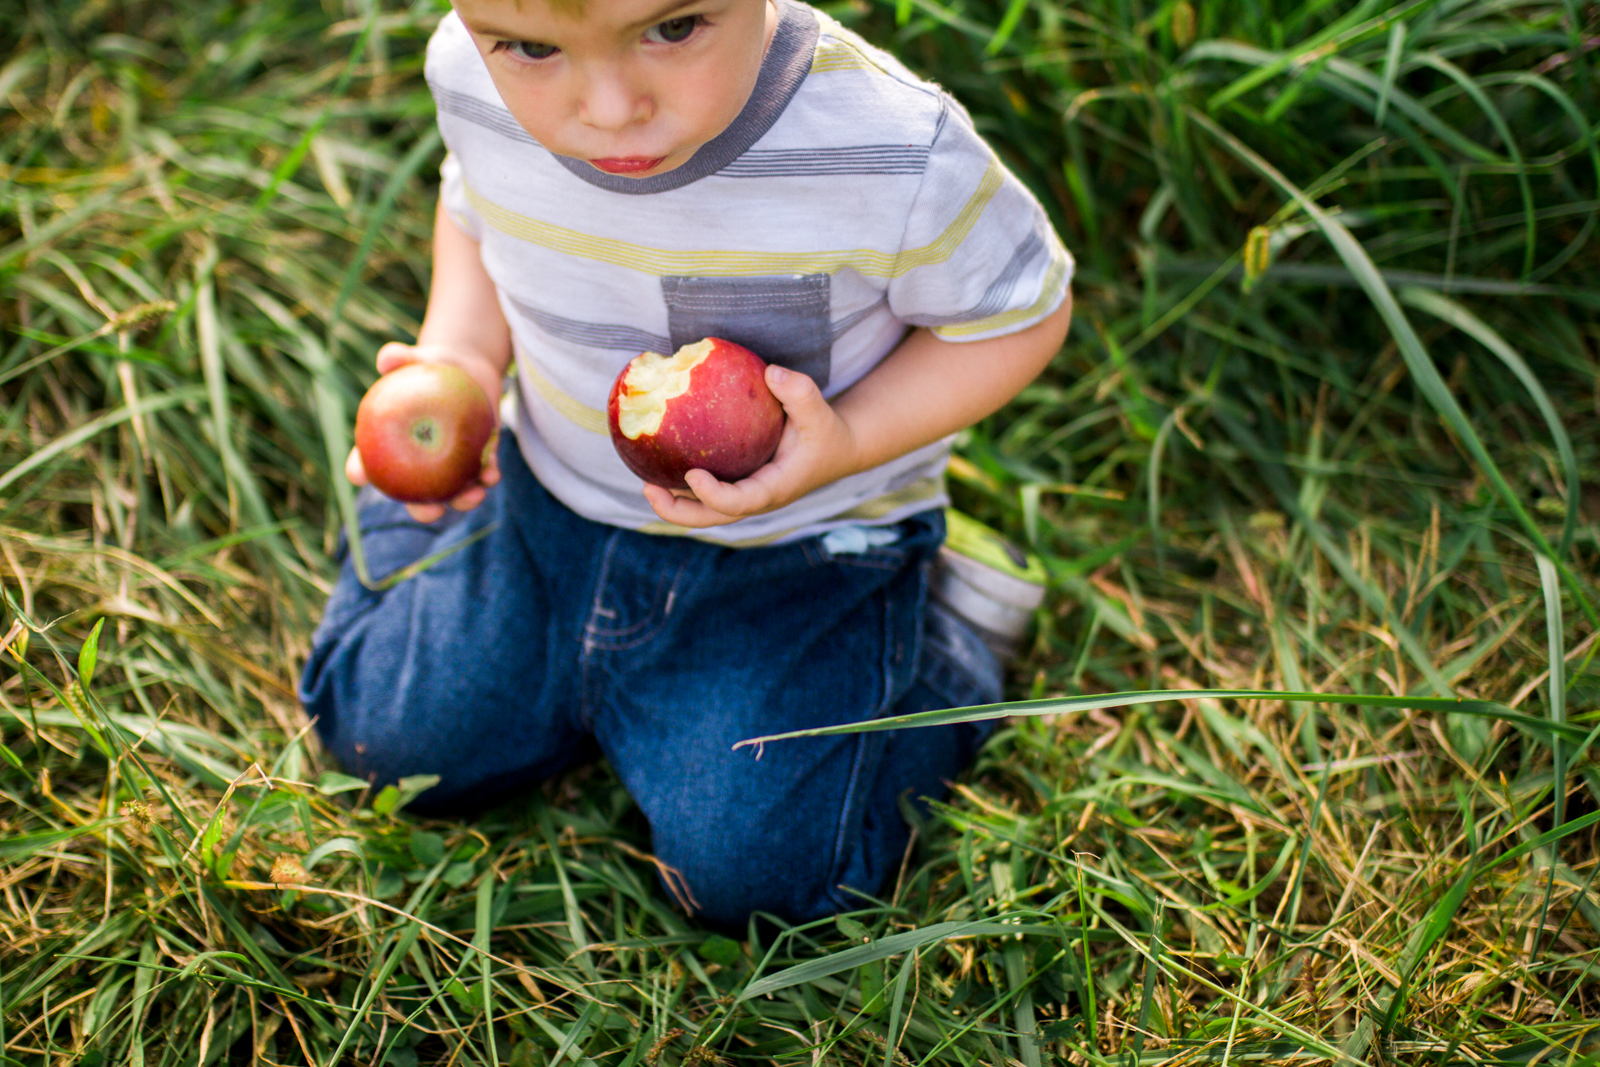 Rebecca Clair Photography, Kansas City lifestyle photographer, apple picking photo session, apple orchard photos, Kansas City family photographer, boy holding apples